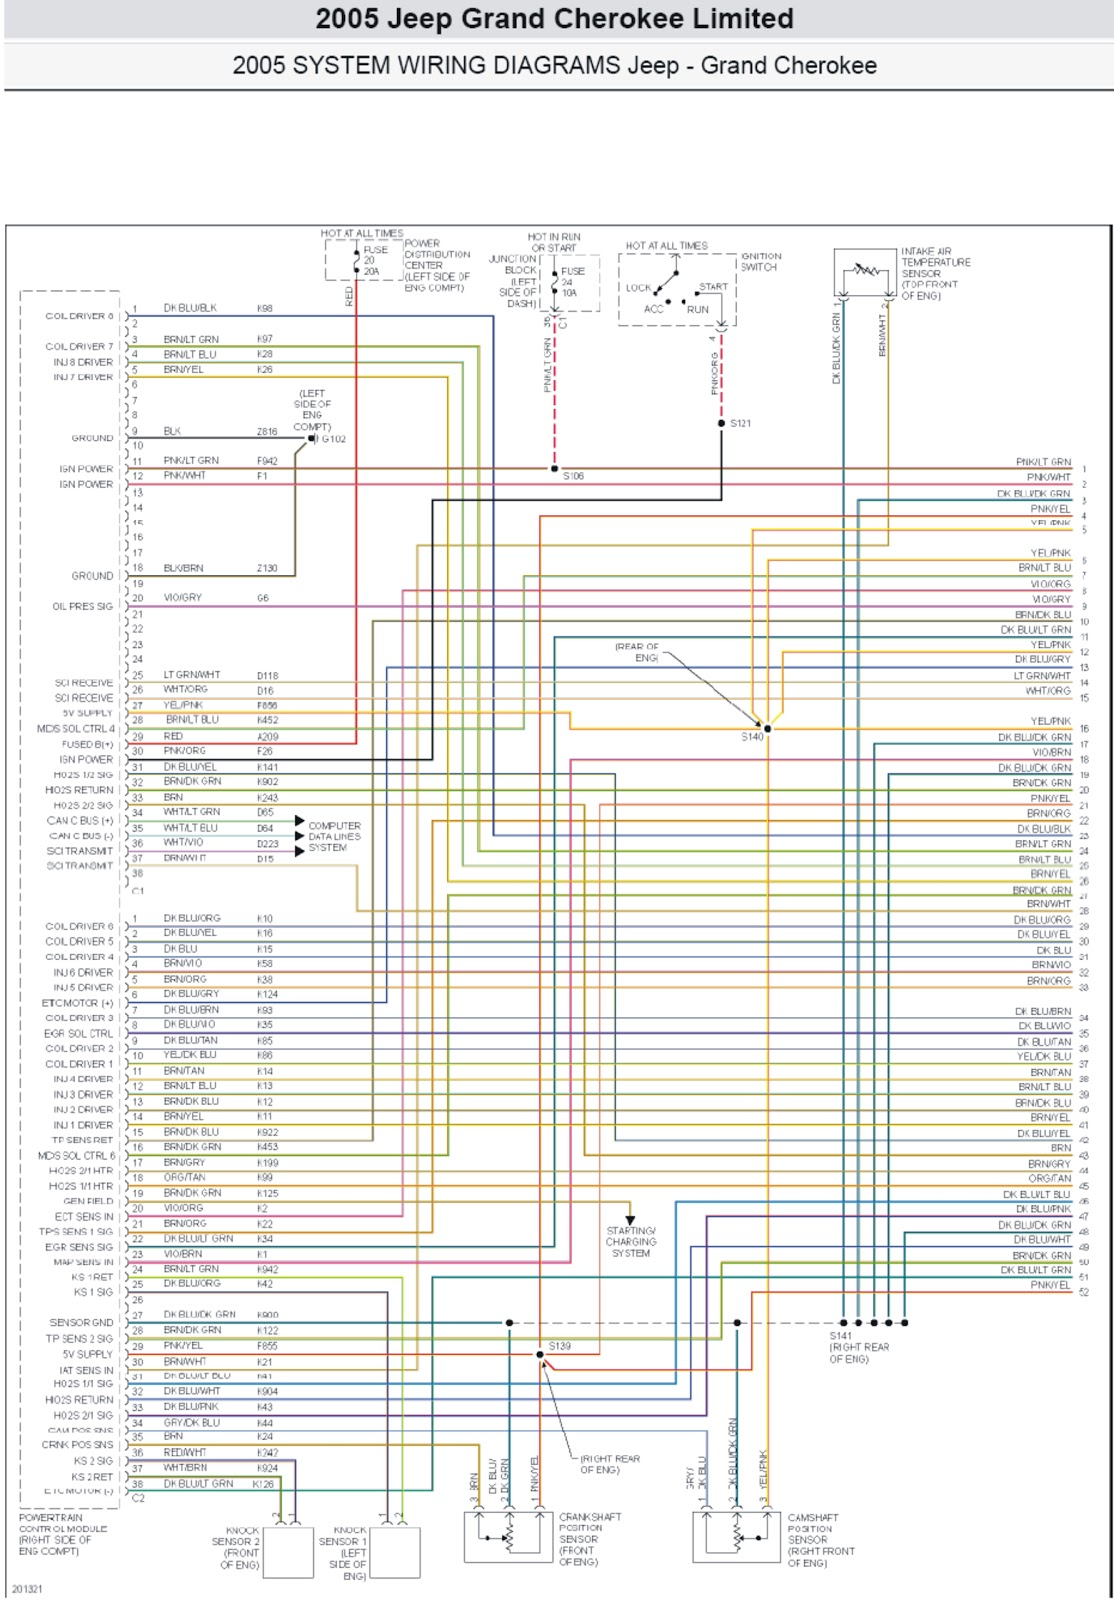 Jeep Grand Cherokee Wiring Diagram 2005